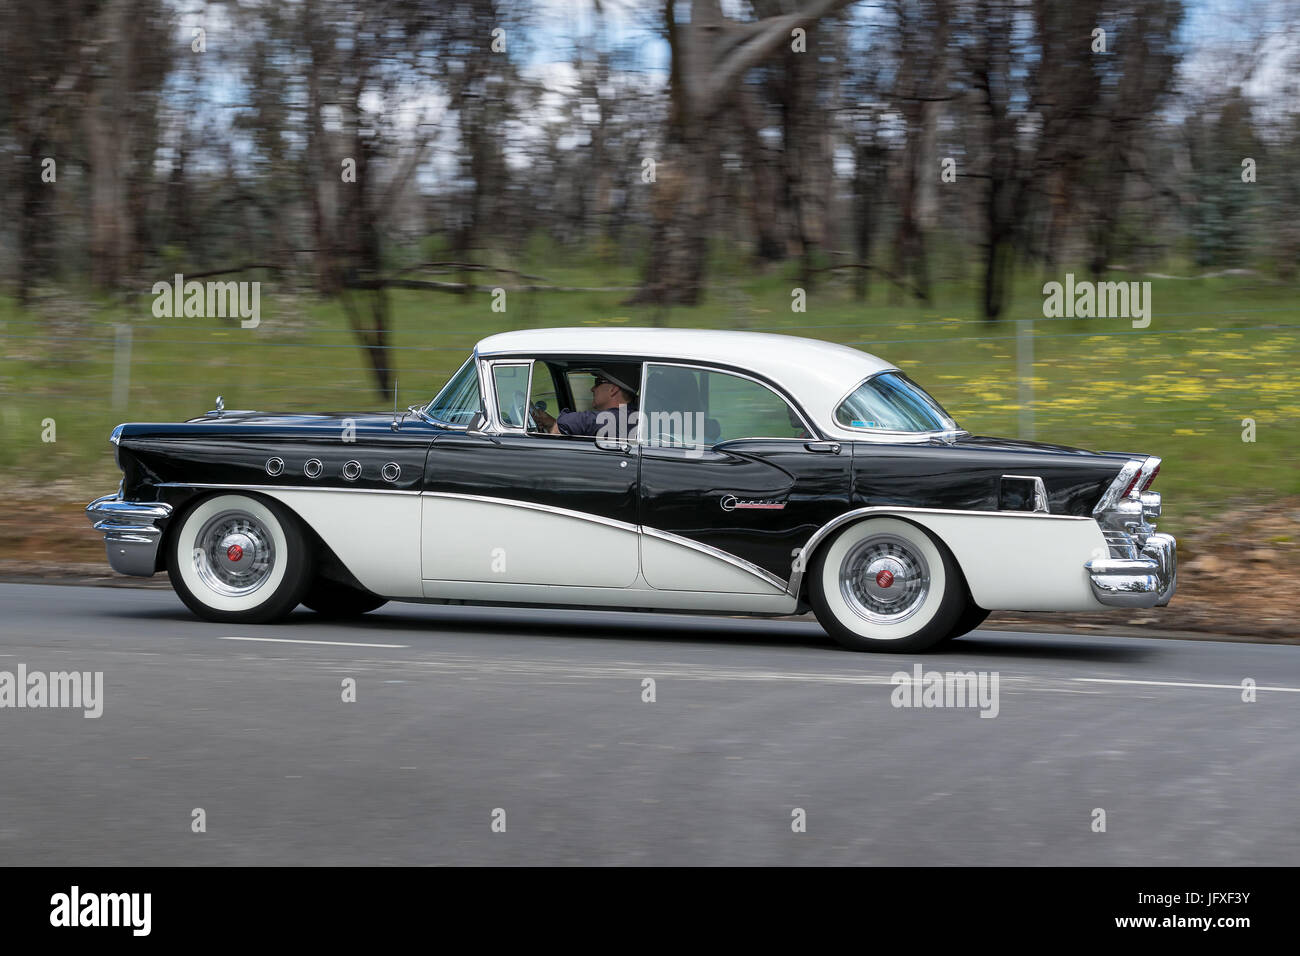 vintage 1955 buick century sedan driving on country roads near the